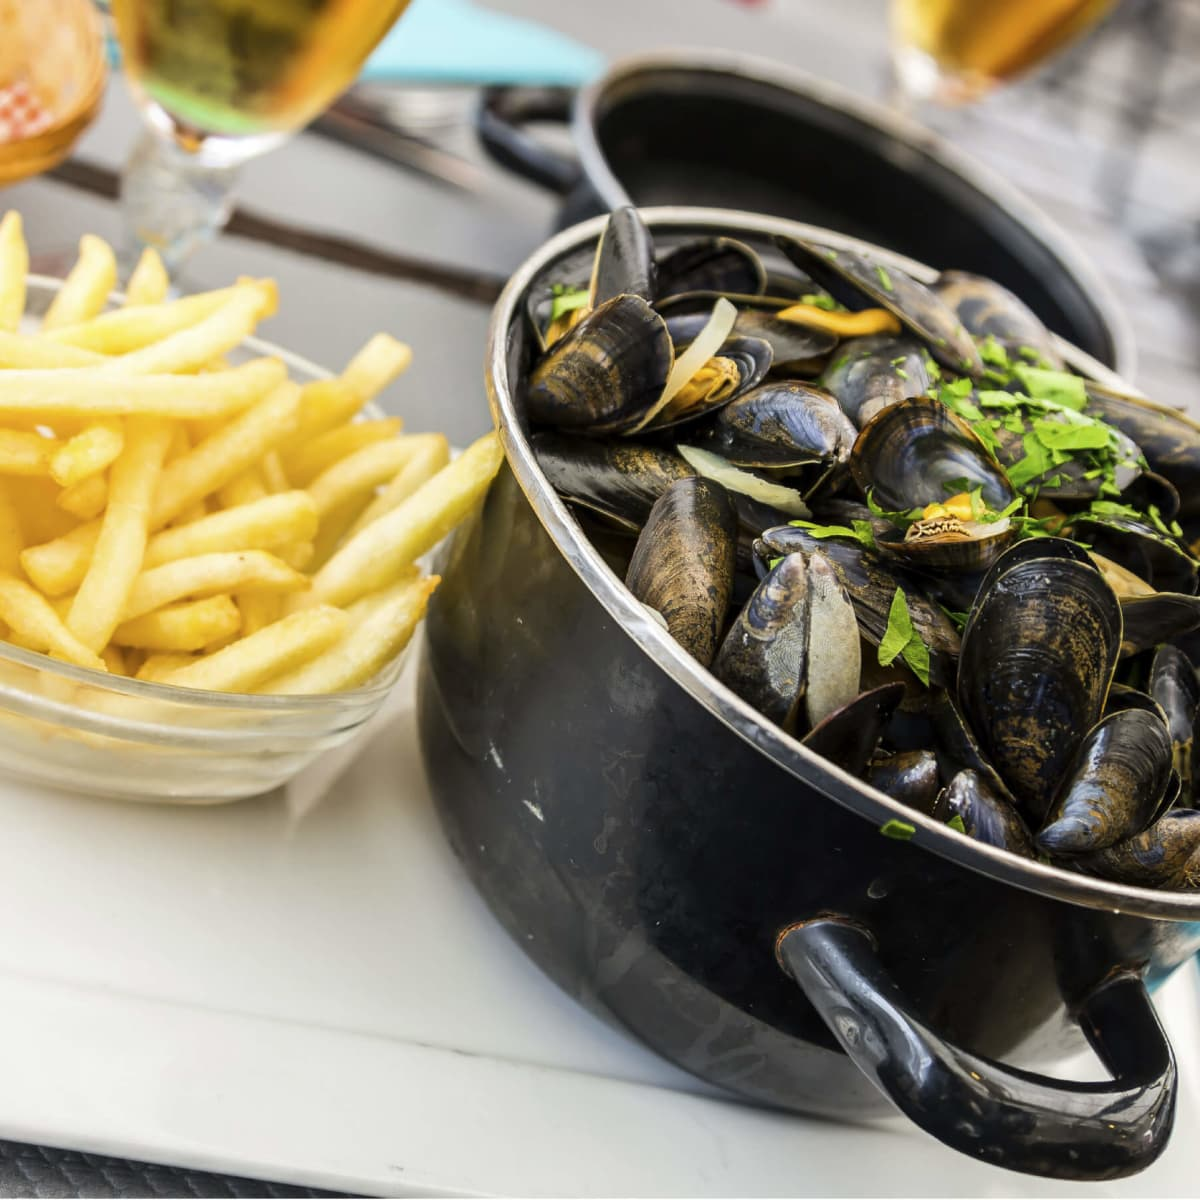 Mussels and frites (fries)